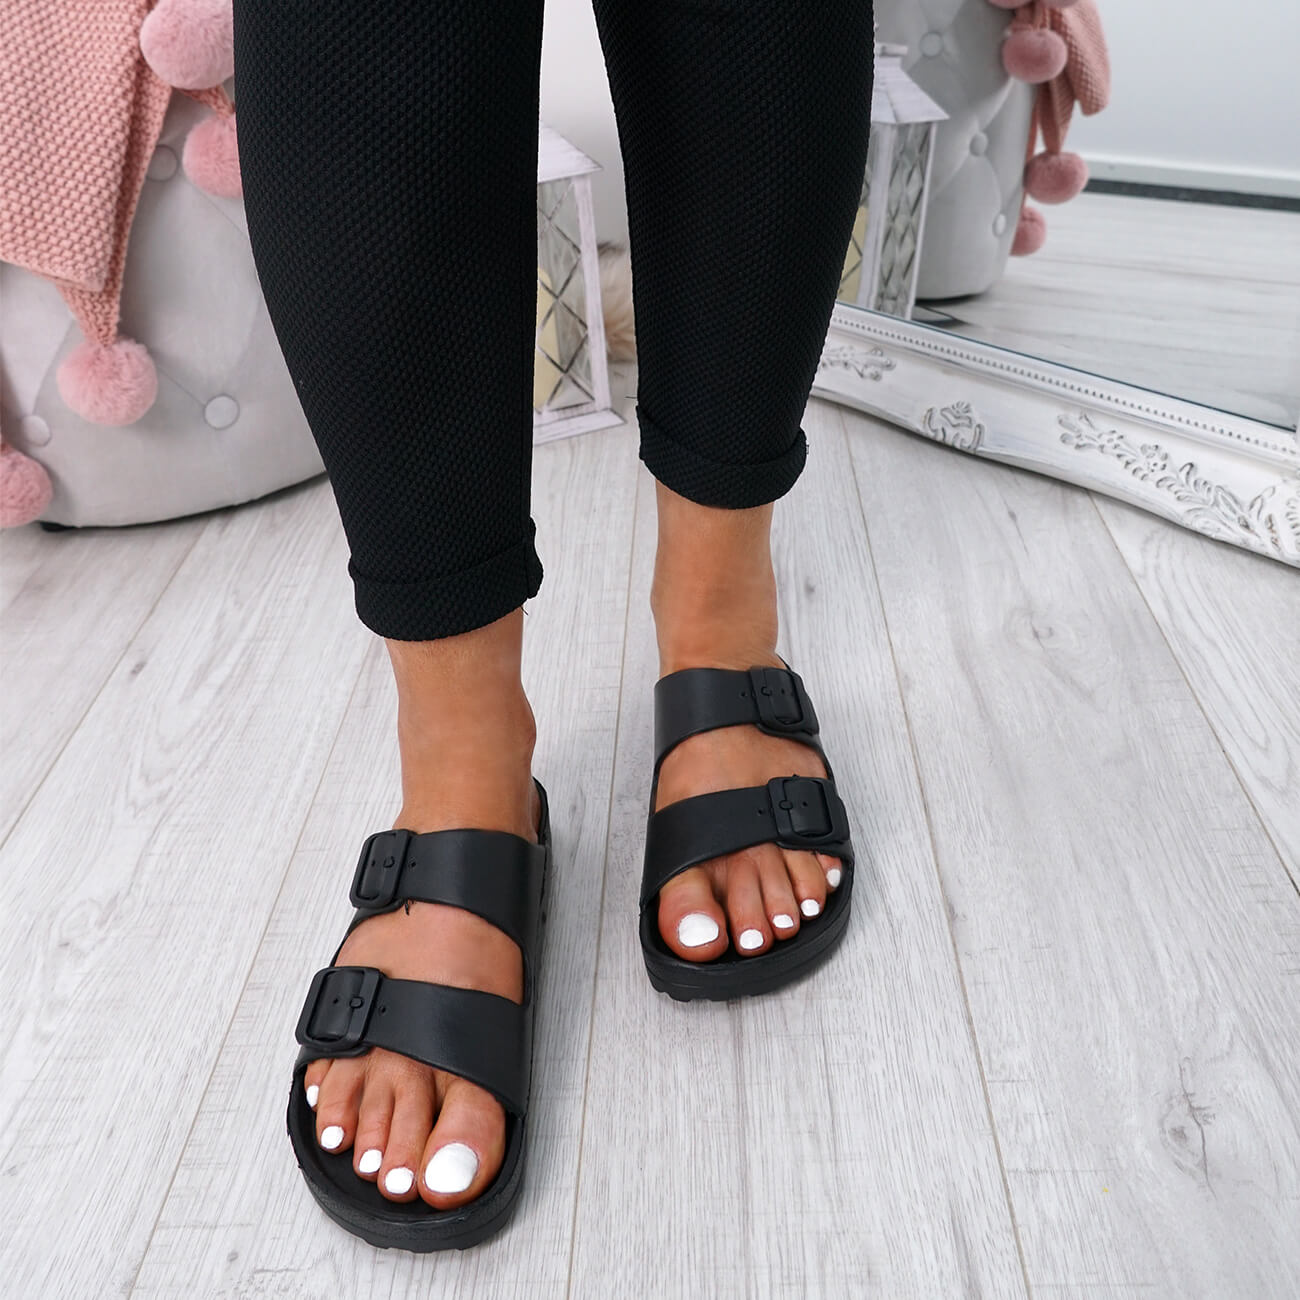 WOMENS-LADIES-SLIP-ON-DOUBLE-BUCKLE-FLAT-SANDALS-SUMMER-SHOES-SIZE-UK thumbnail 7